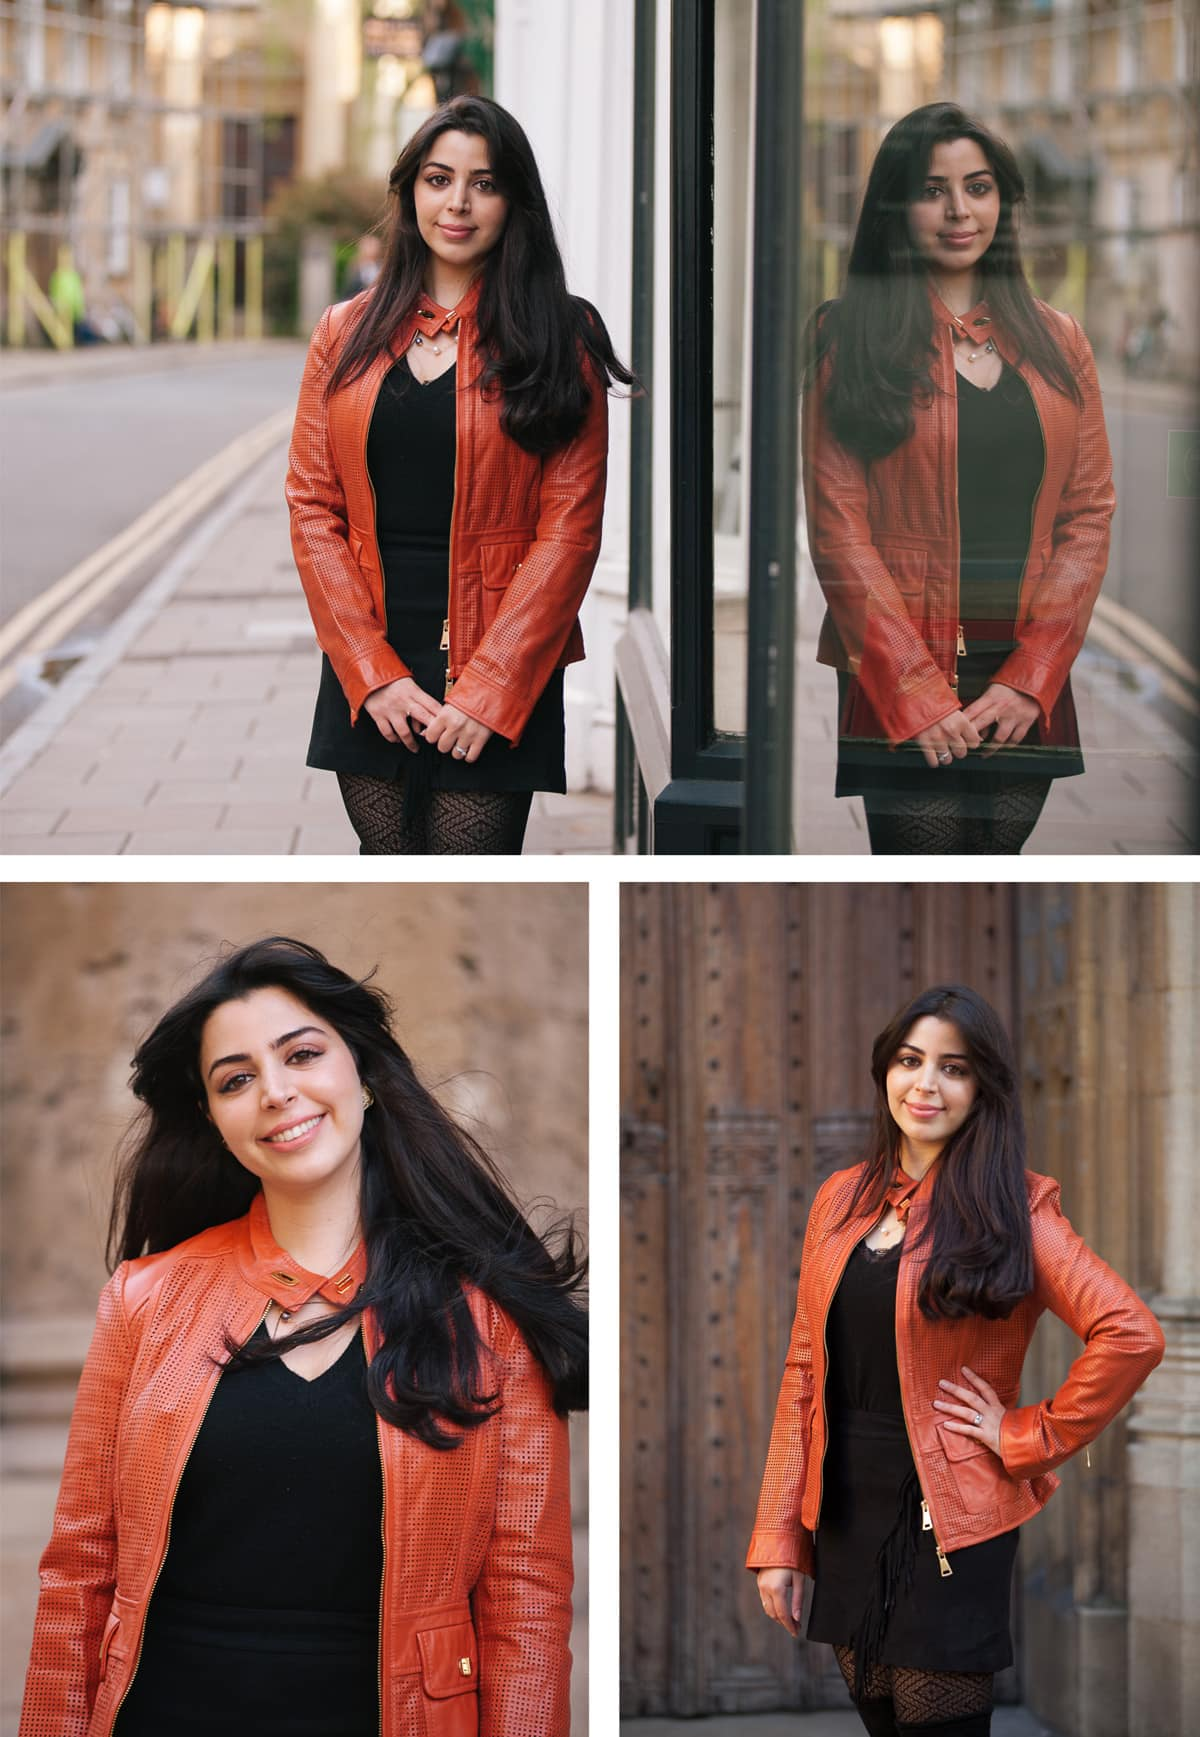 Collage of images from a portrait shoot in and around Oxford. Woman wears black dress and orange leather jacket